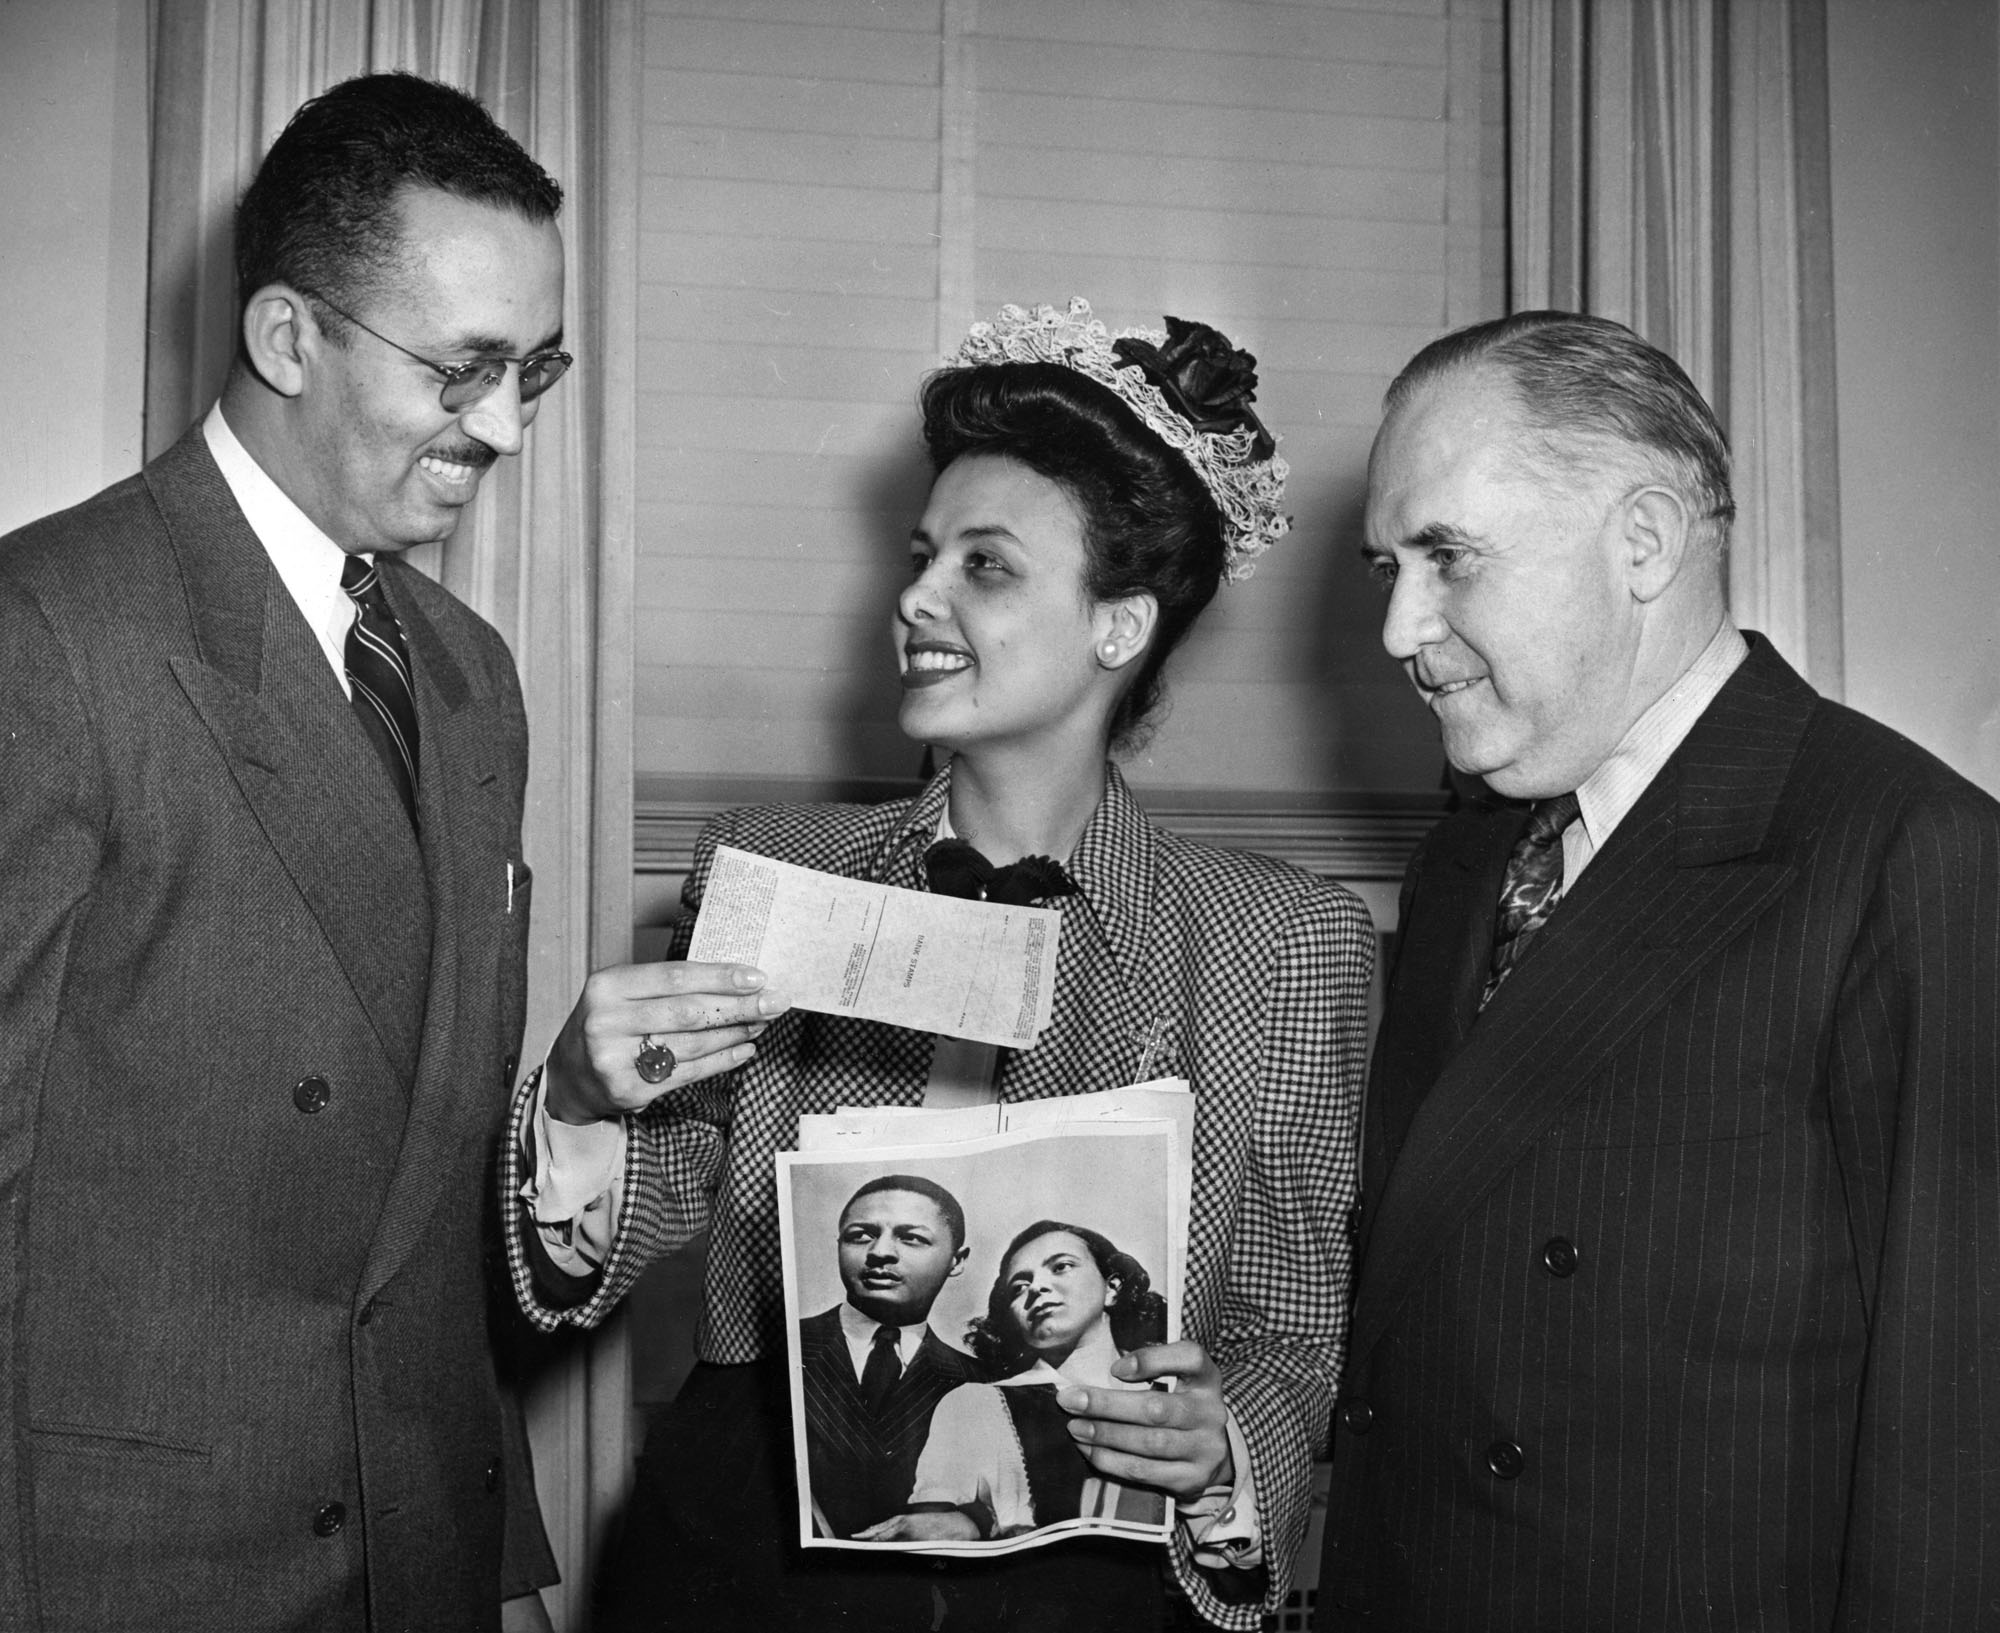 Lena Horne, William Trent Jr. and Thomas A. Morgan